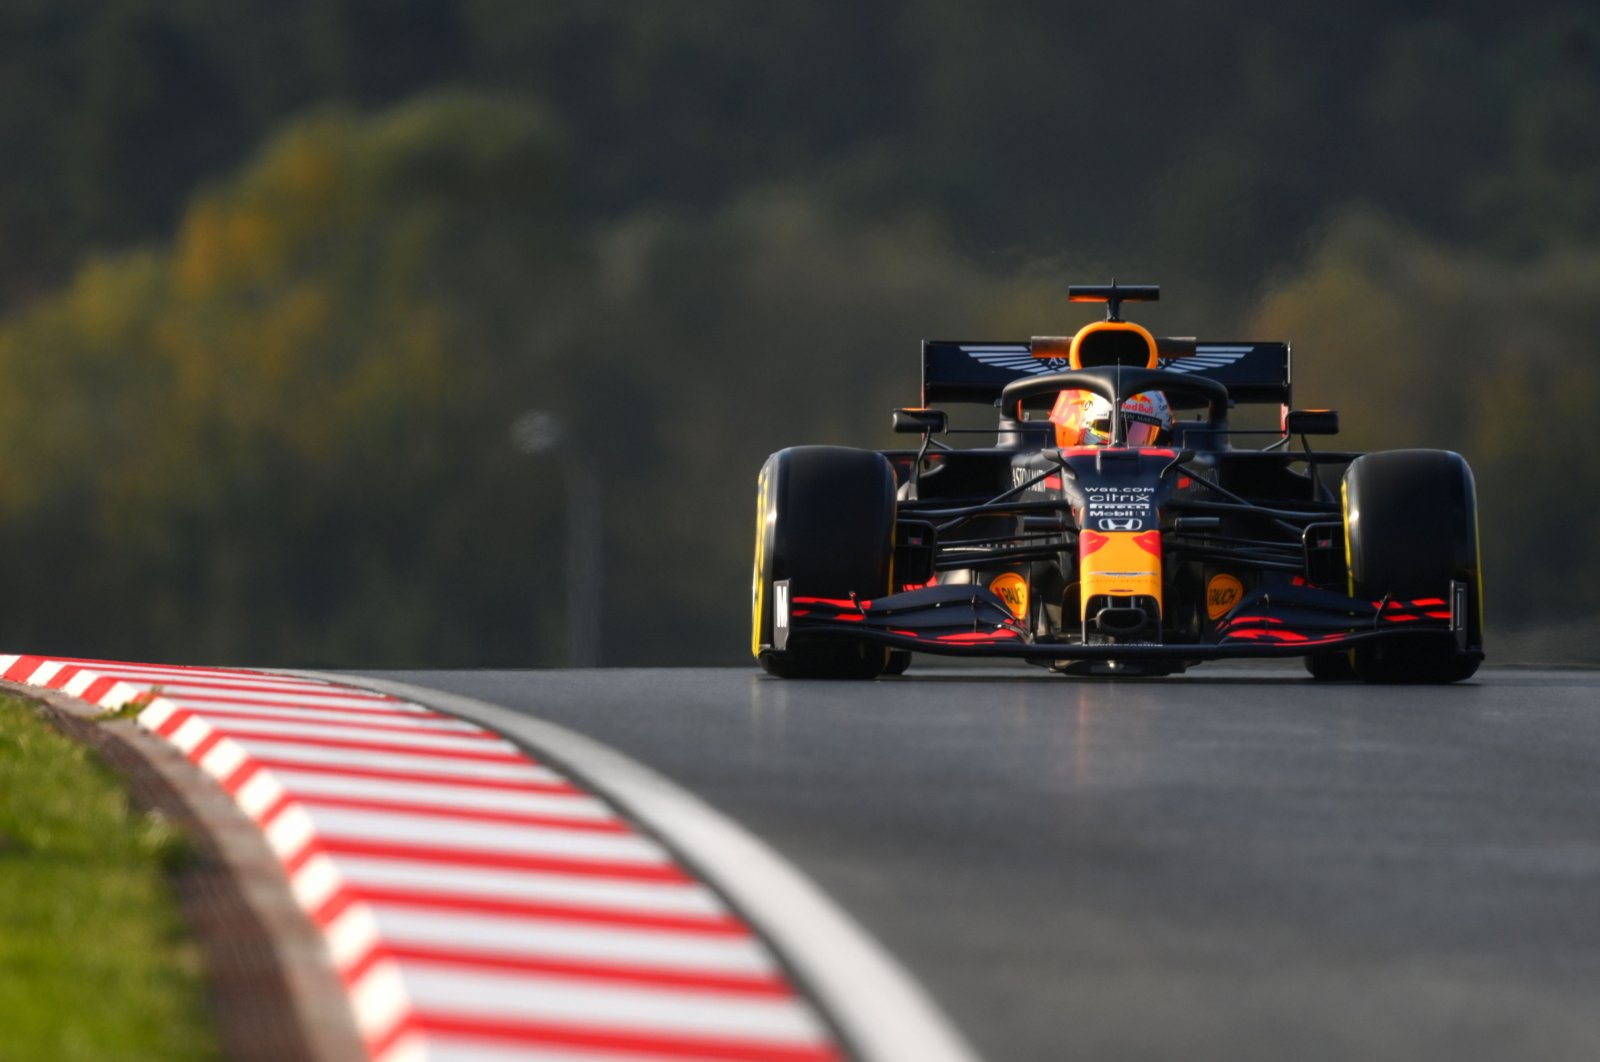 Red Bull's Dutch driver Max Verstappen drives during the second practice session in Istanbul, Turkey, Nov. 13, 2020. (AFP Photo)